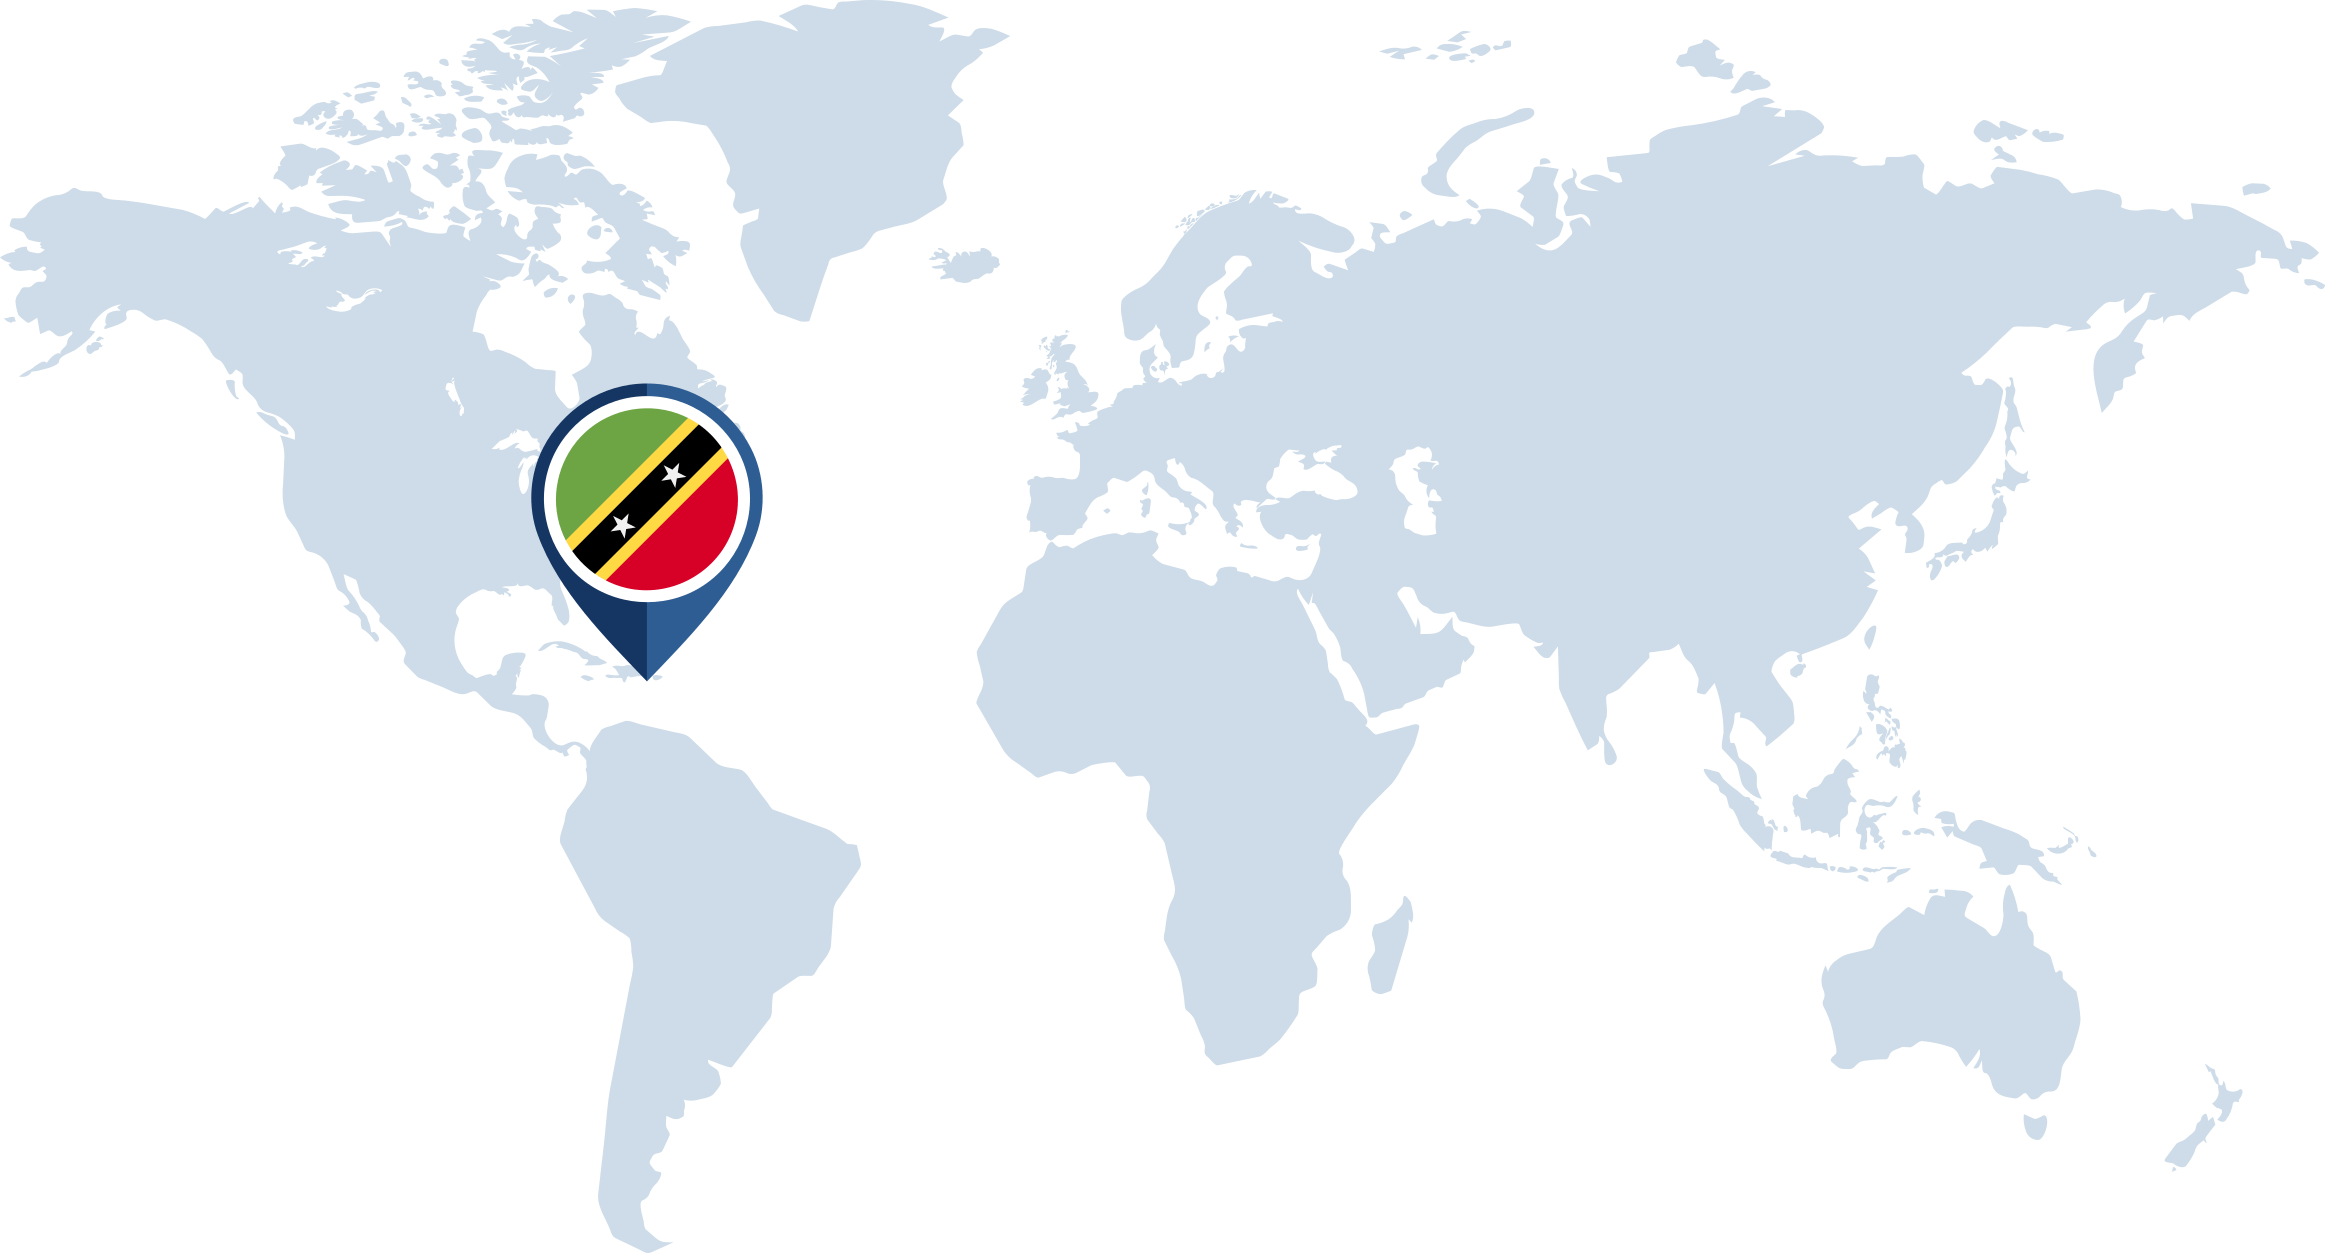 https://bluemina.com/wp-content/uploads/2020/01/Saint-Kitts-and-Nevis-Location.png